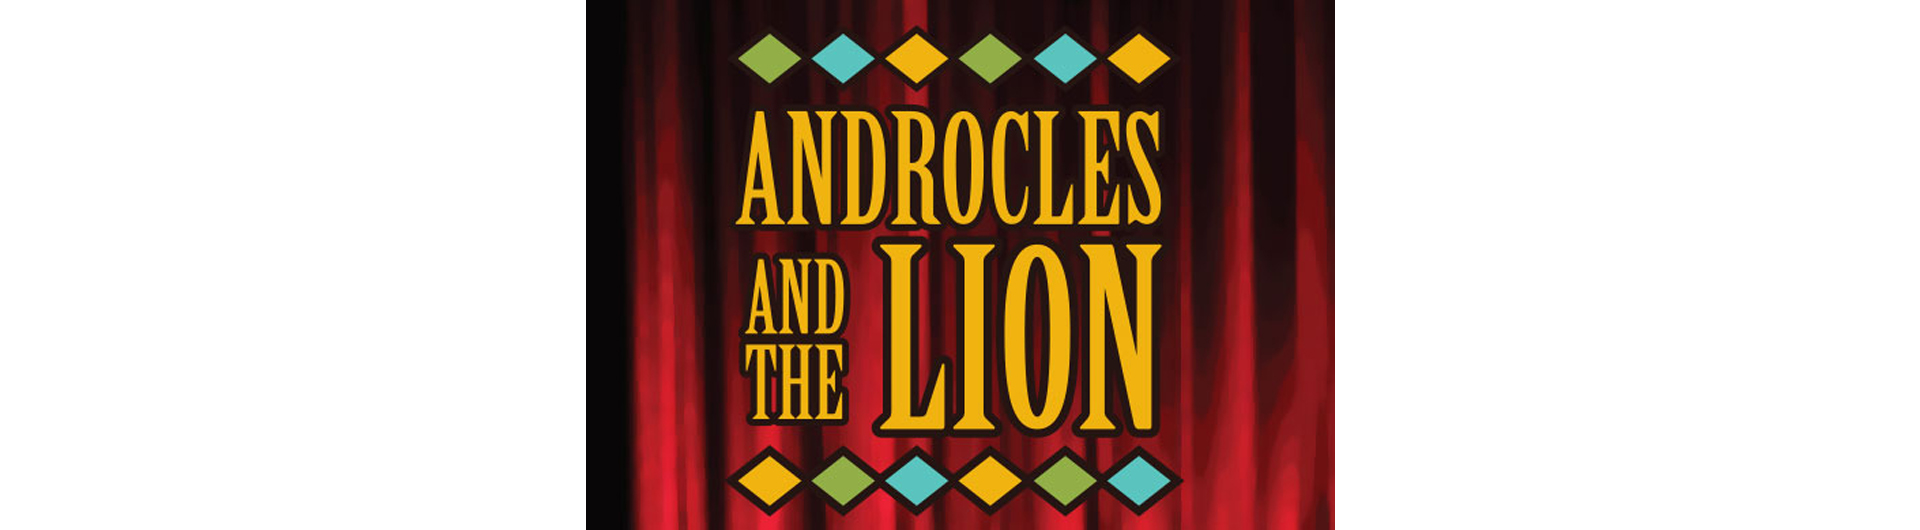 Androcles and the Lion title graphic